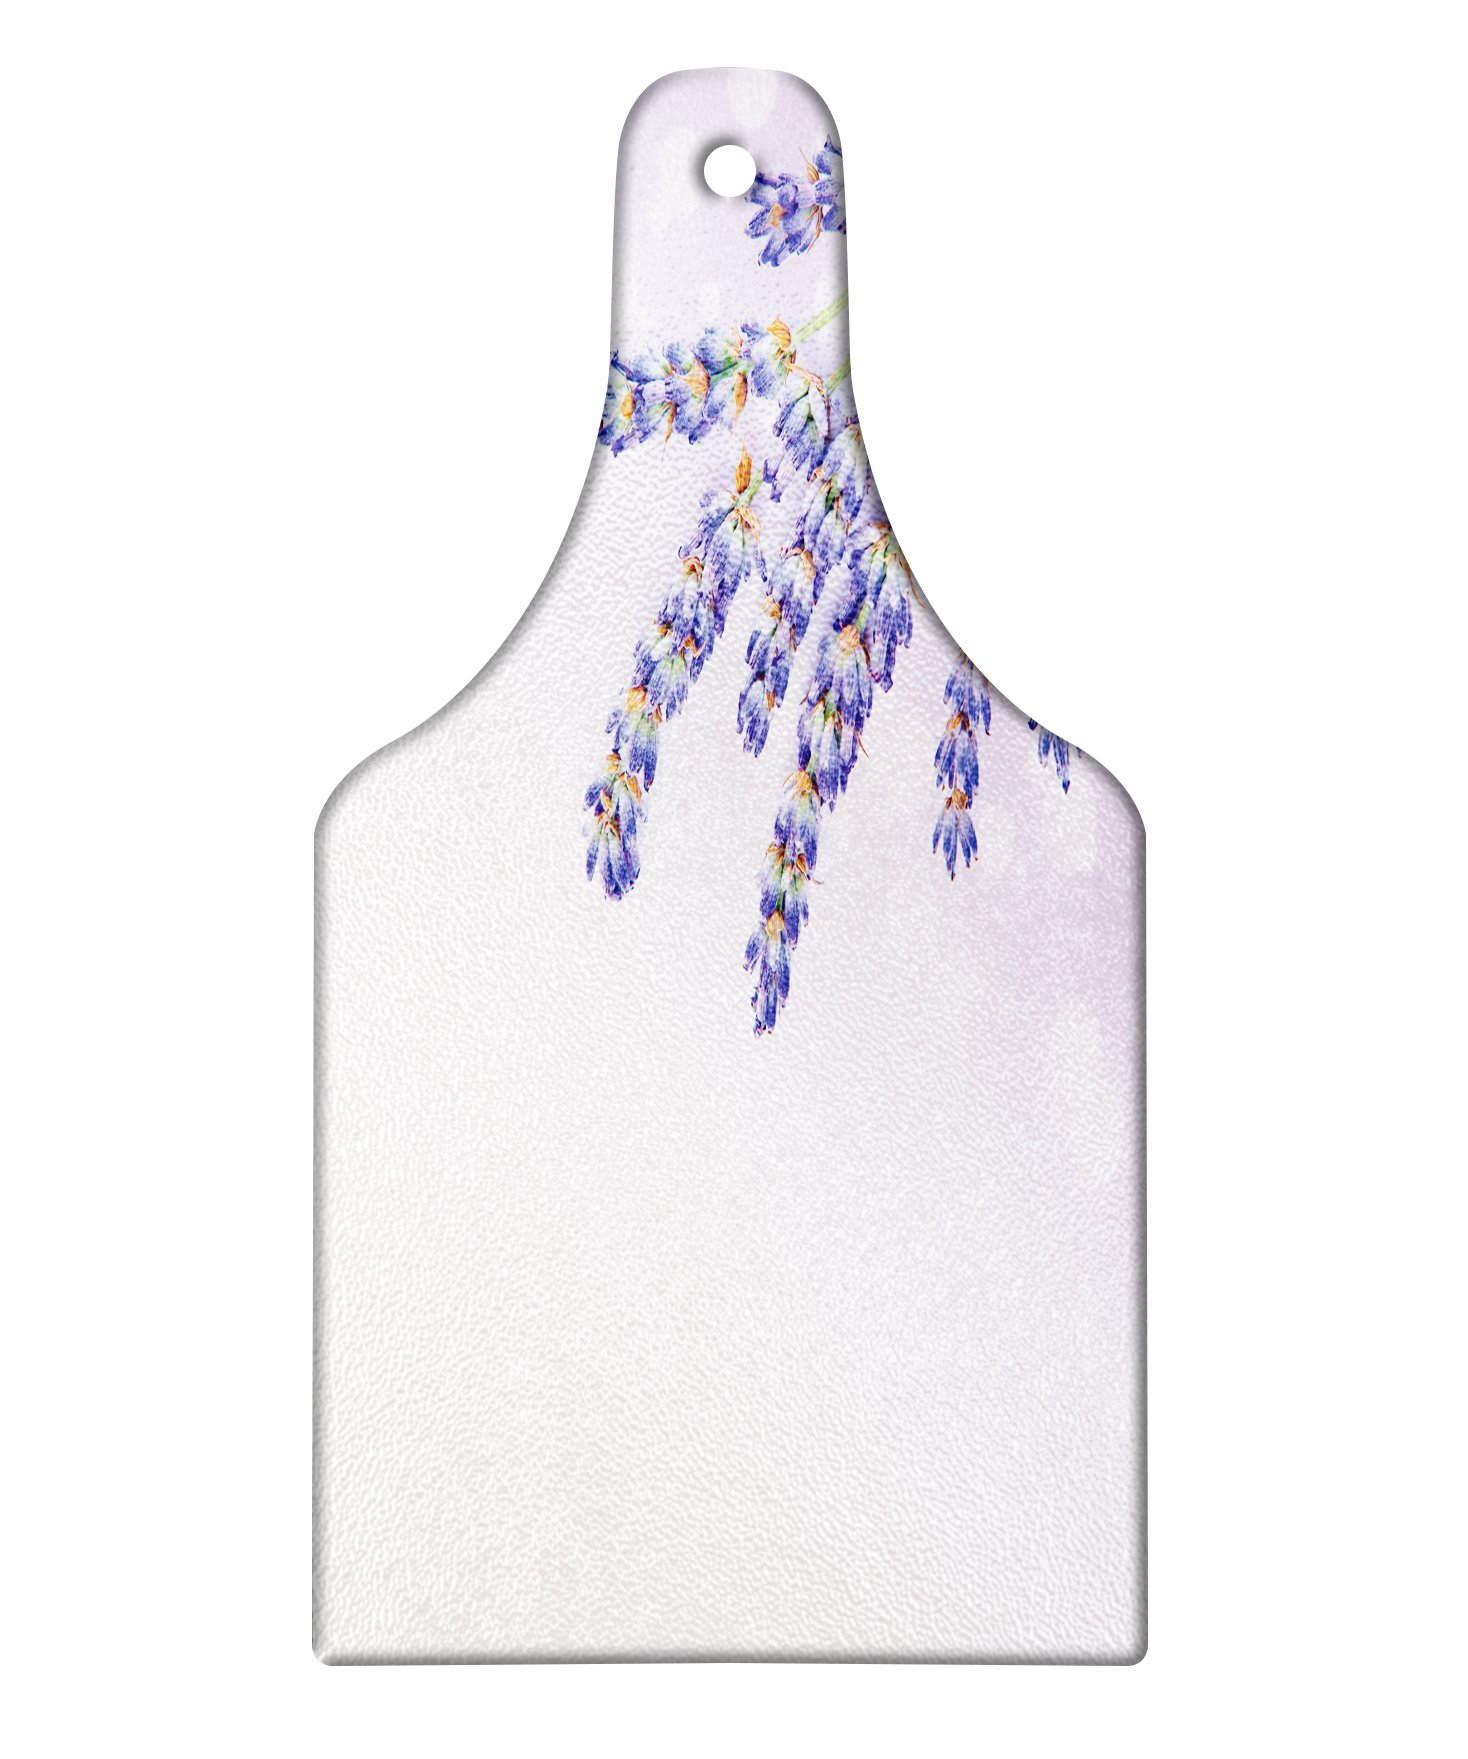 Ambesonne Lavender Cutting Board, Little Posy of Medicinal Herb Fresh Plant of Purple Flower Spa Aromatheraphy Organic, Decorative Tempered Glass Cutting and Serving Board, Wine Bottle Shape, Lavander